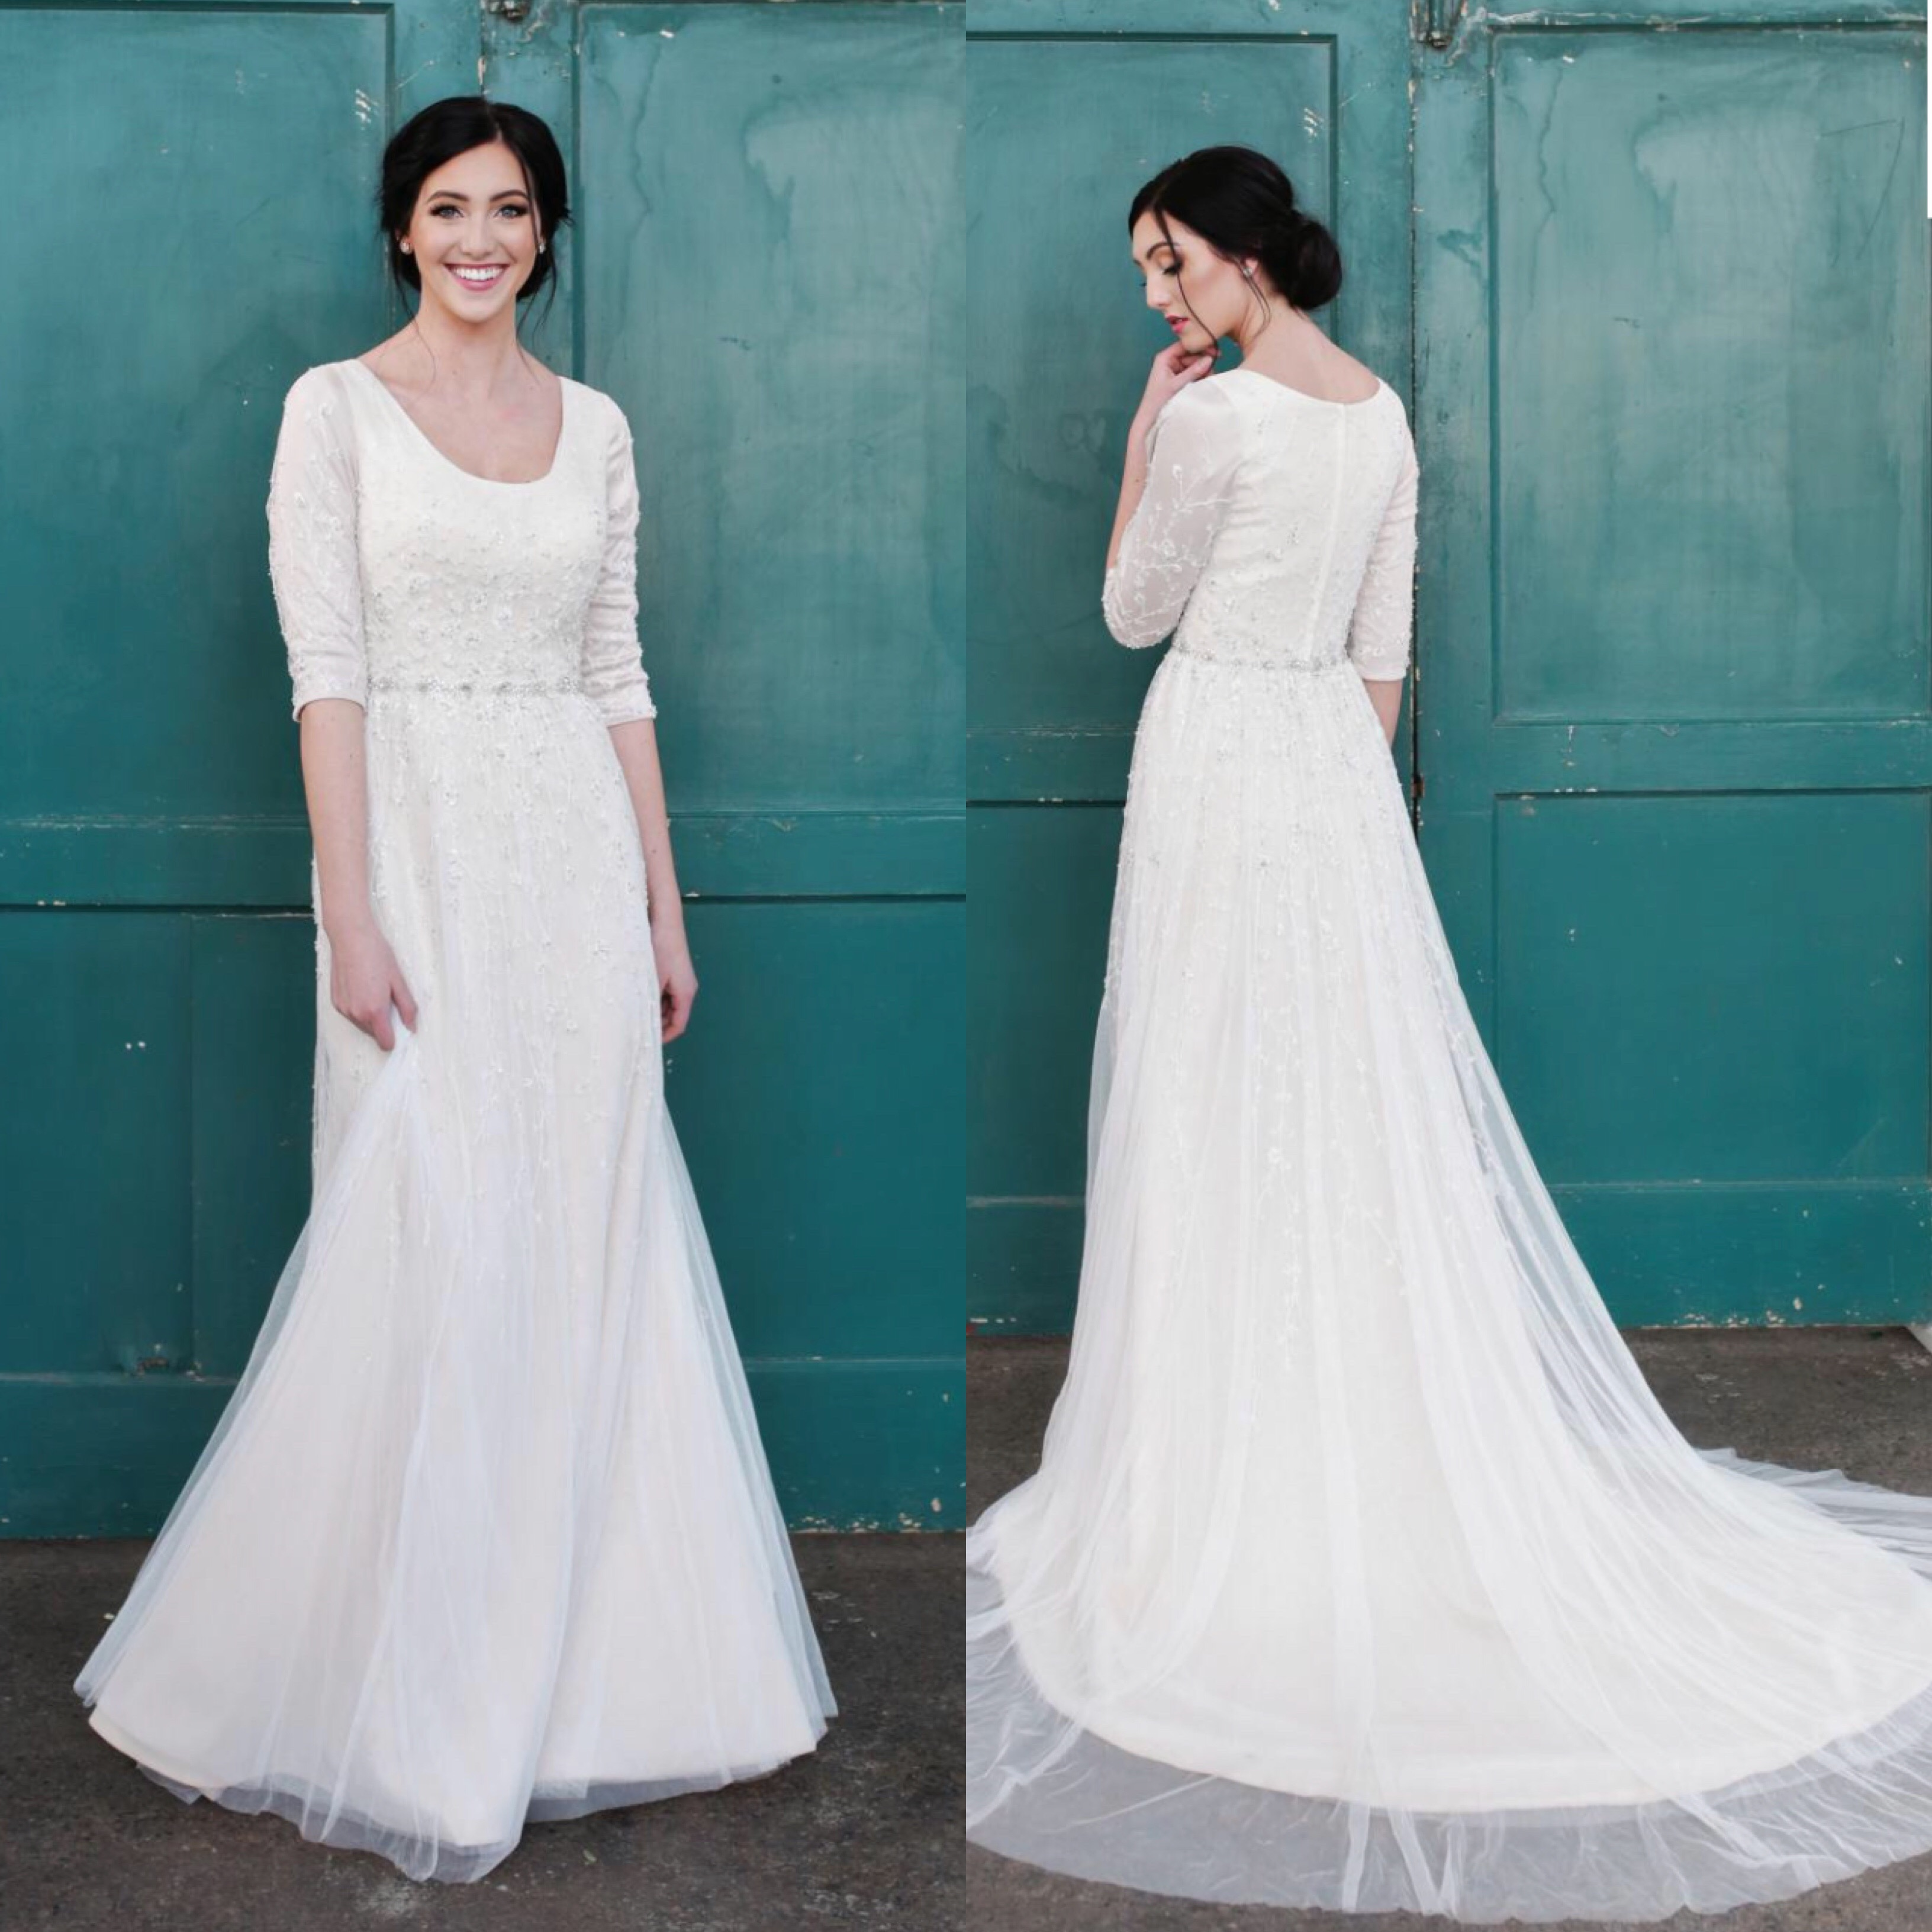 Bridal Collection 4 - The Hitching Post - Modest Wedding Dresses ...